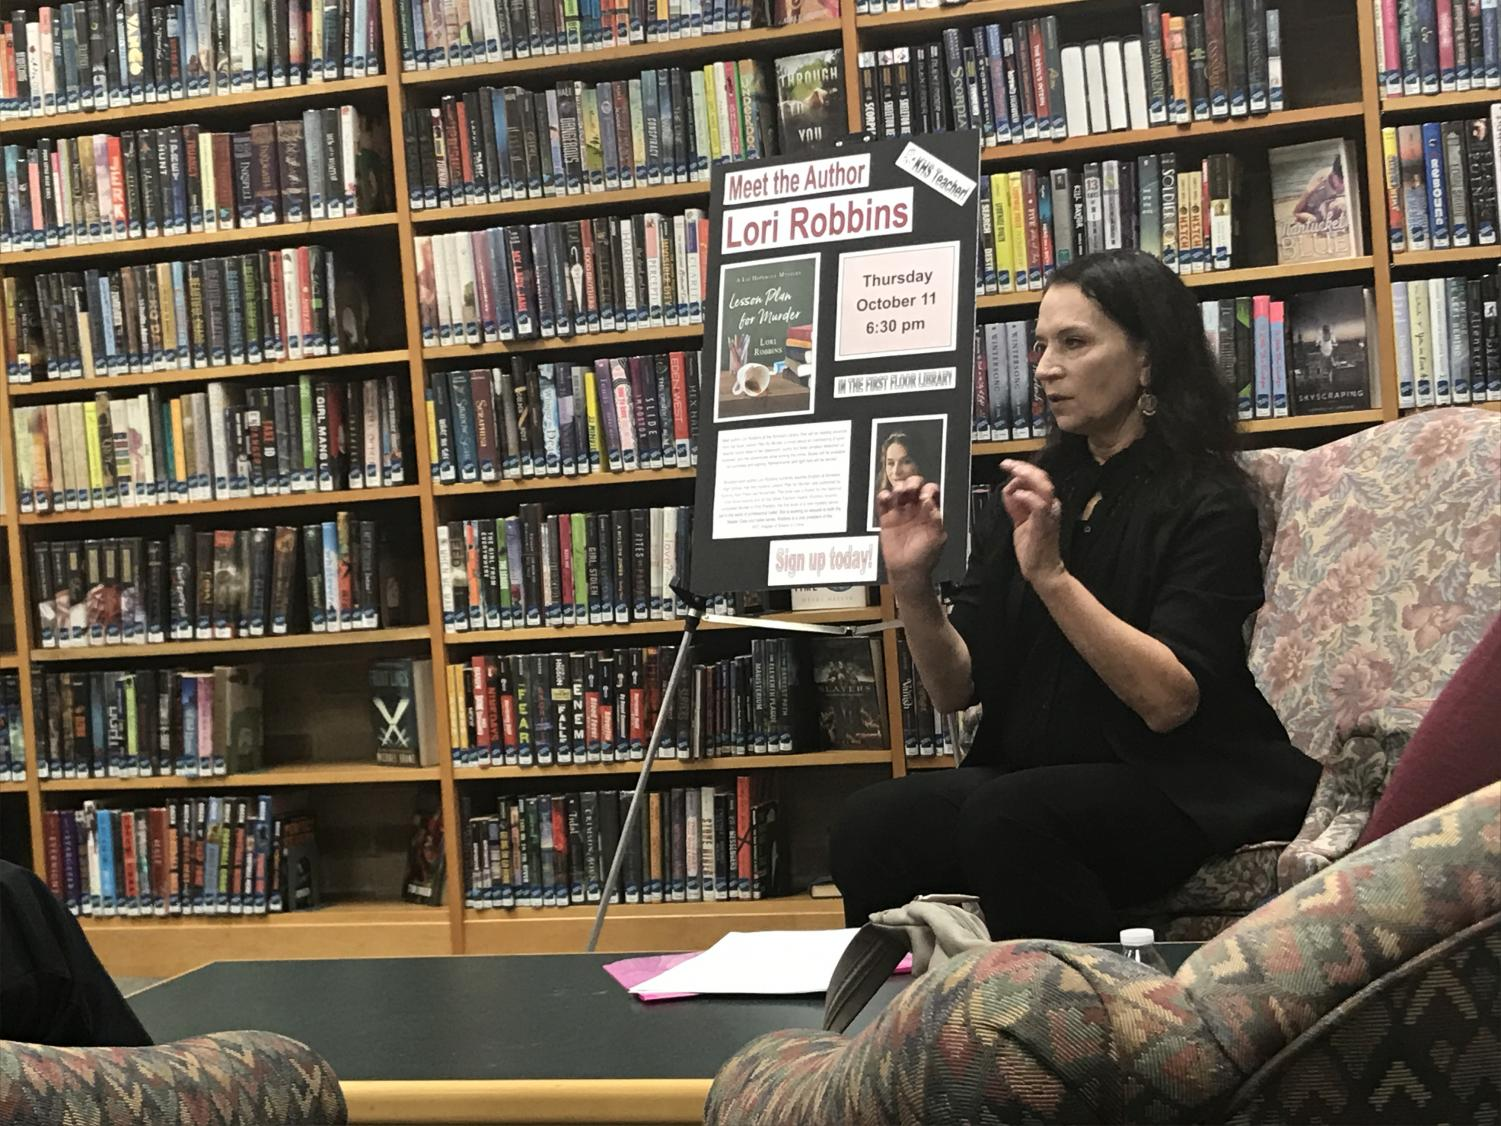 English teacher Lori Robbins have a book talk and reading of her published book